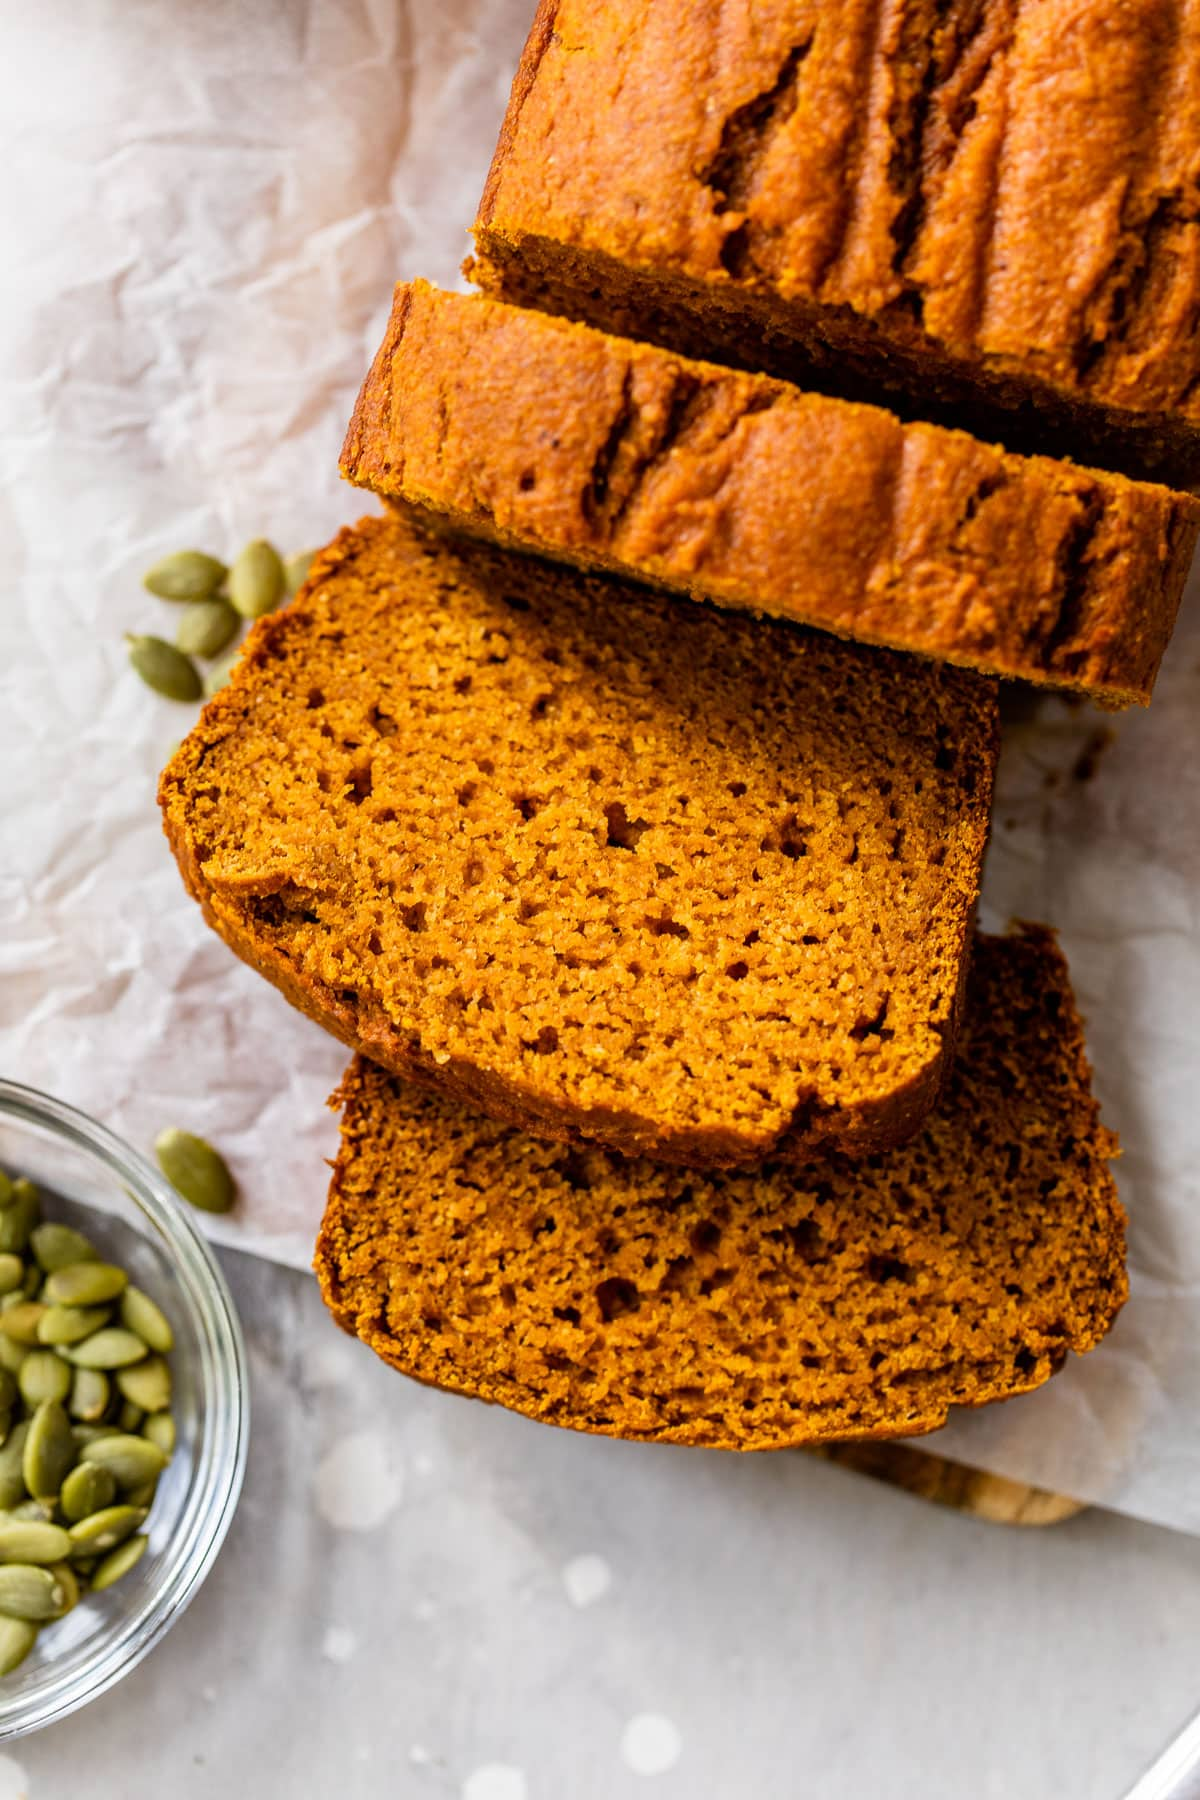 DELICIOUS, moist healthy pumpkin bread. Low fat, but tastes completely decadent! No sugar or butter. Just natural, healthy pumpkin goodness! @wellplated